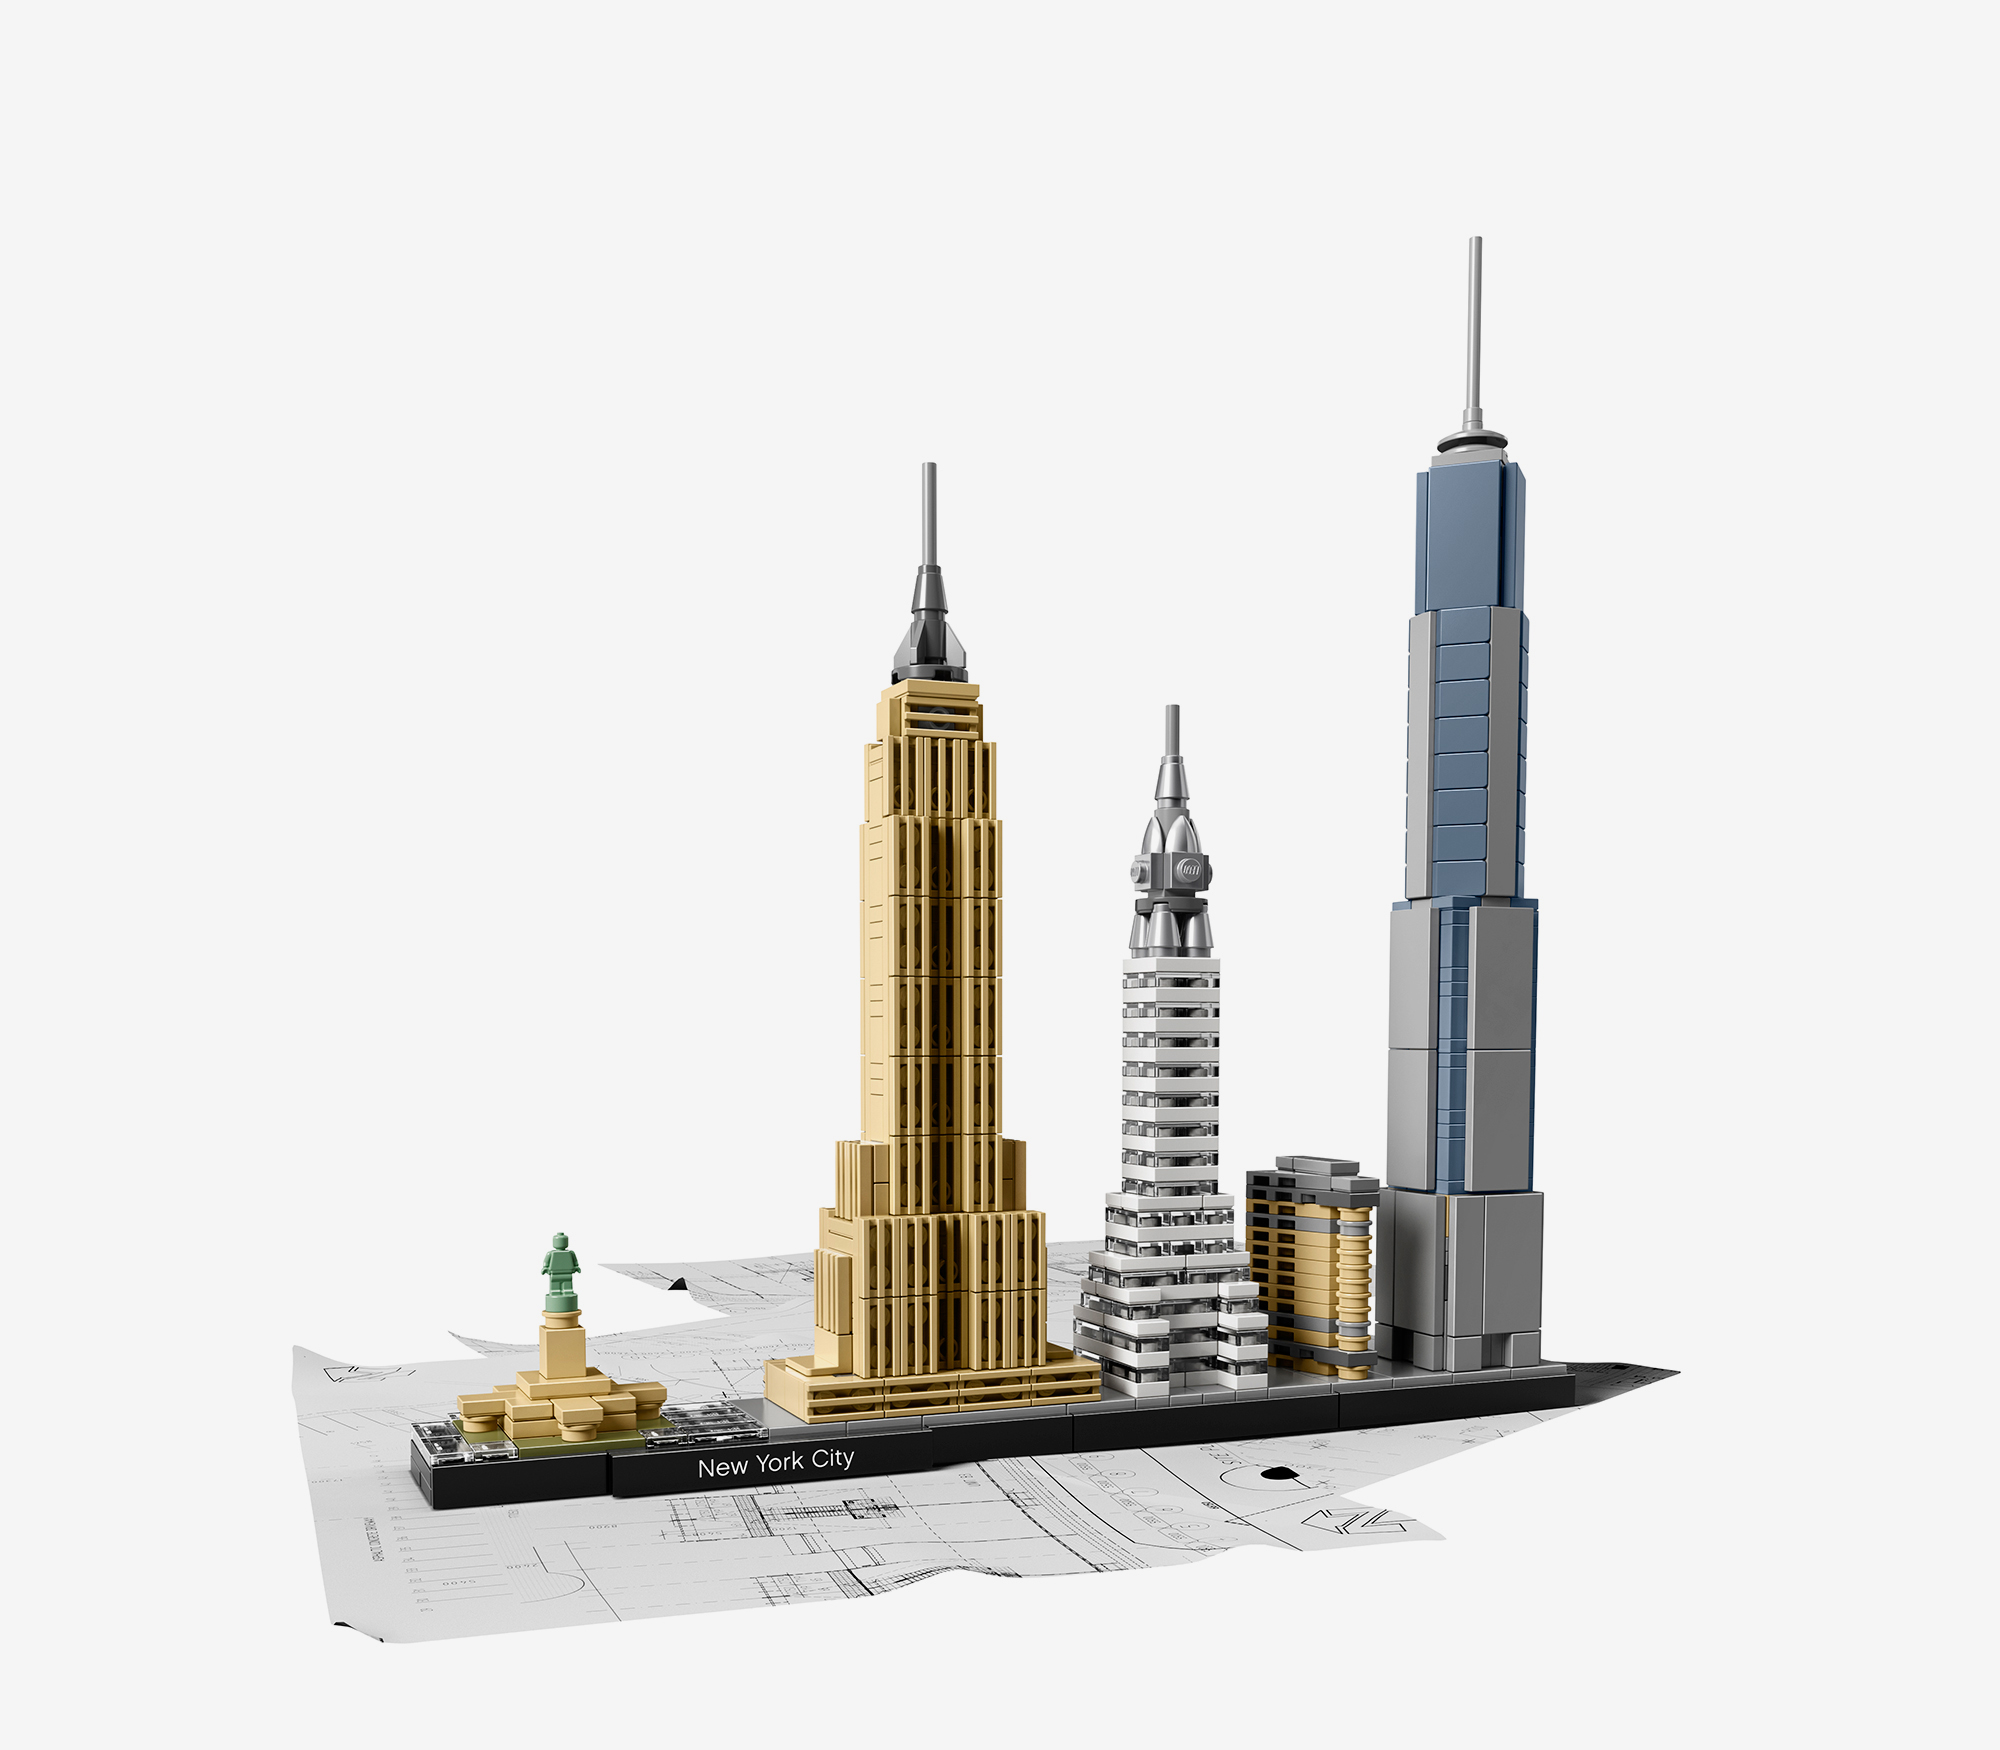 lego-city-archspeech-2